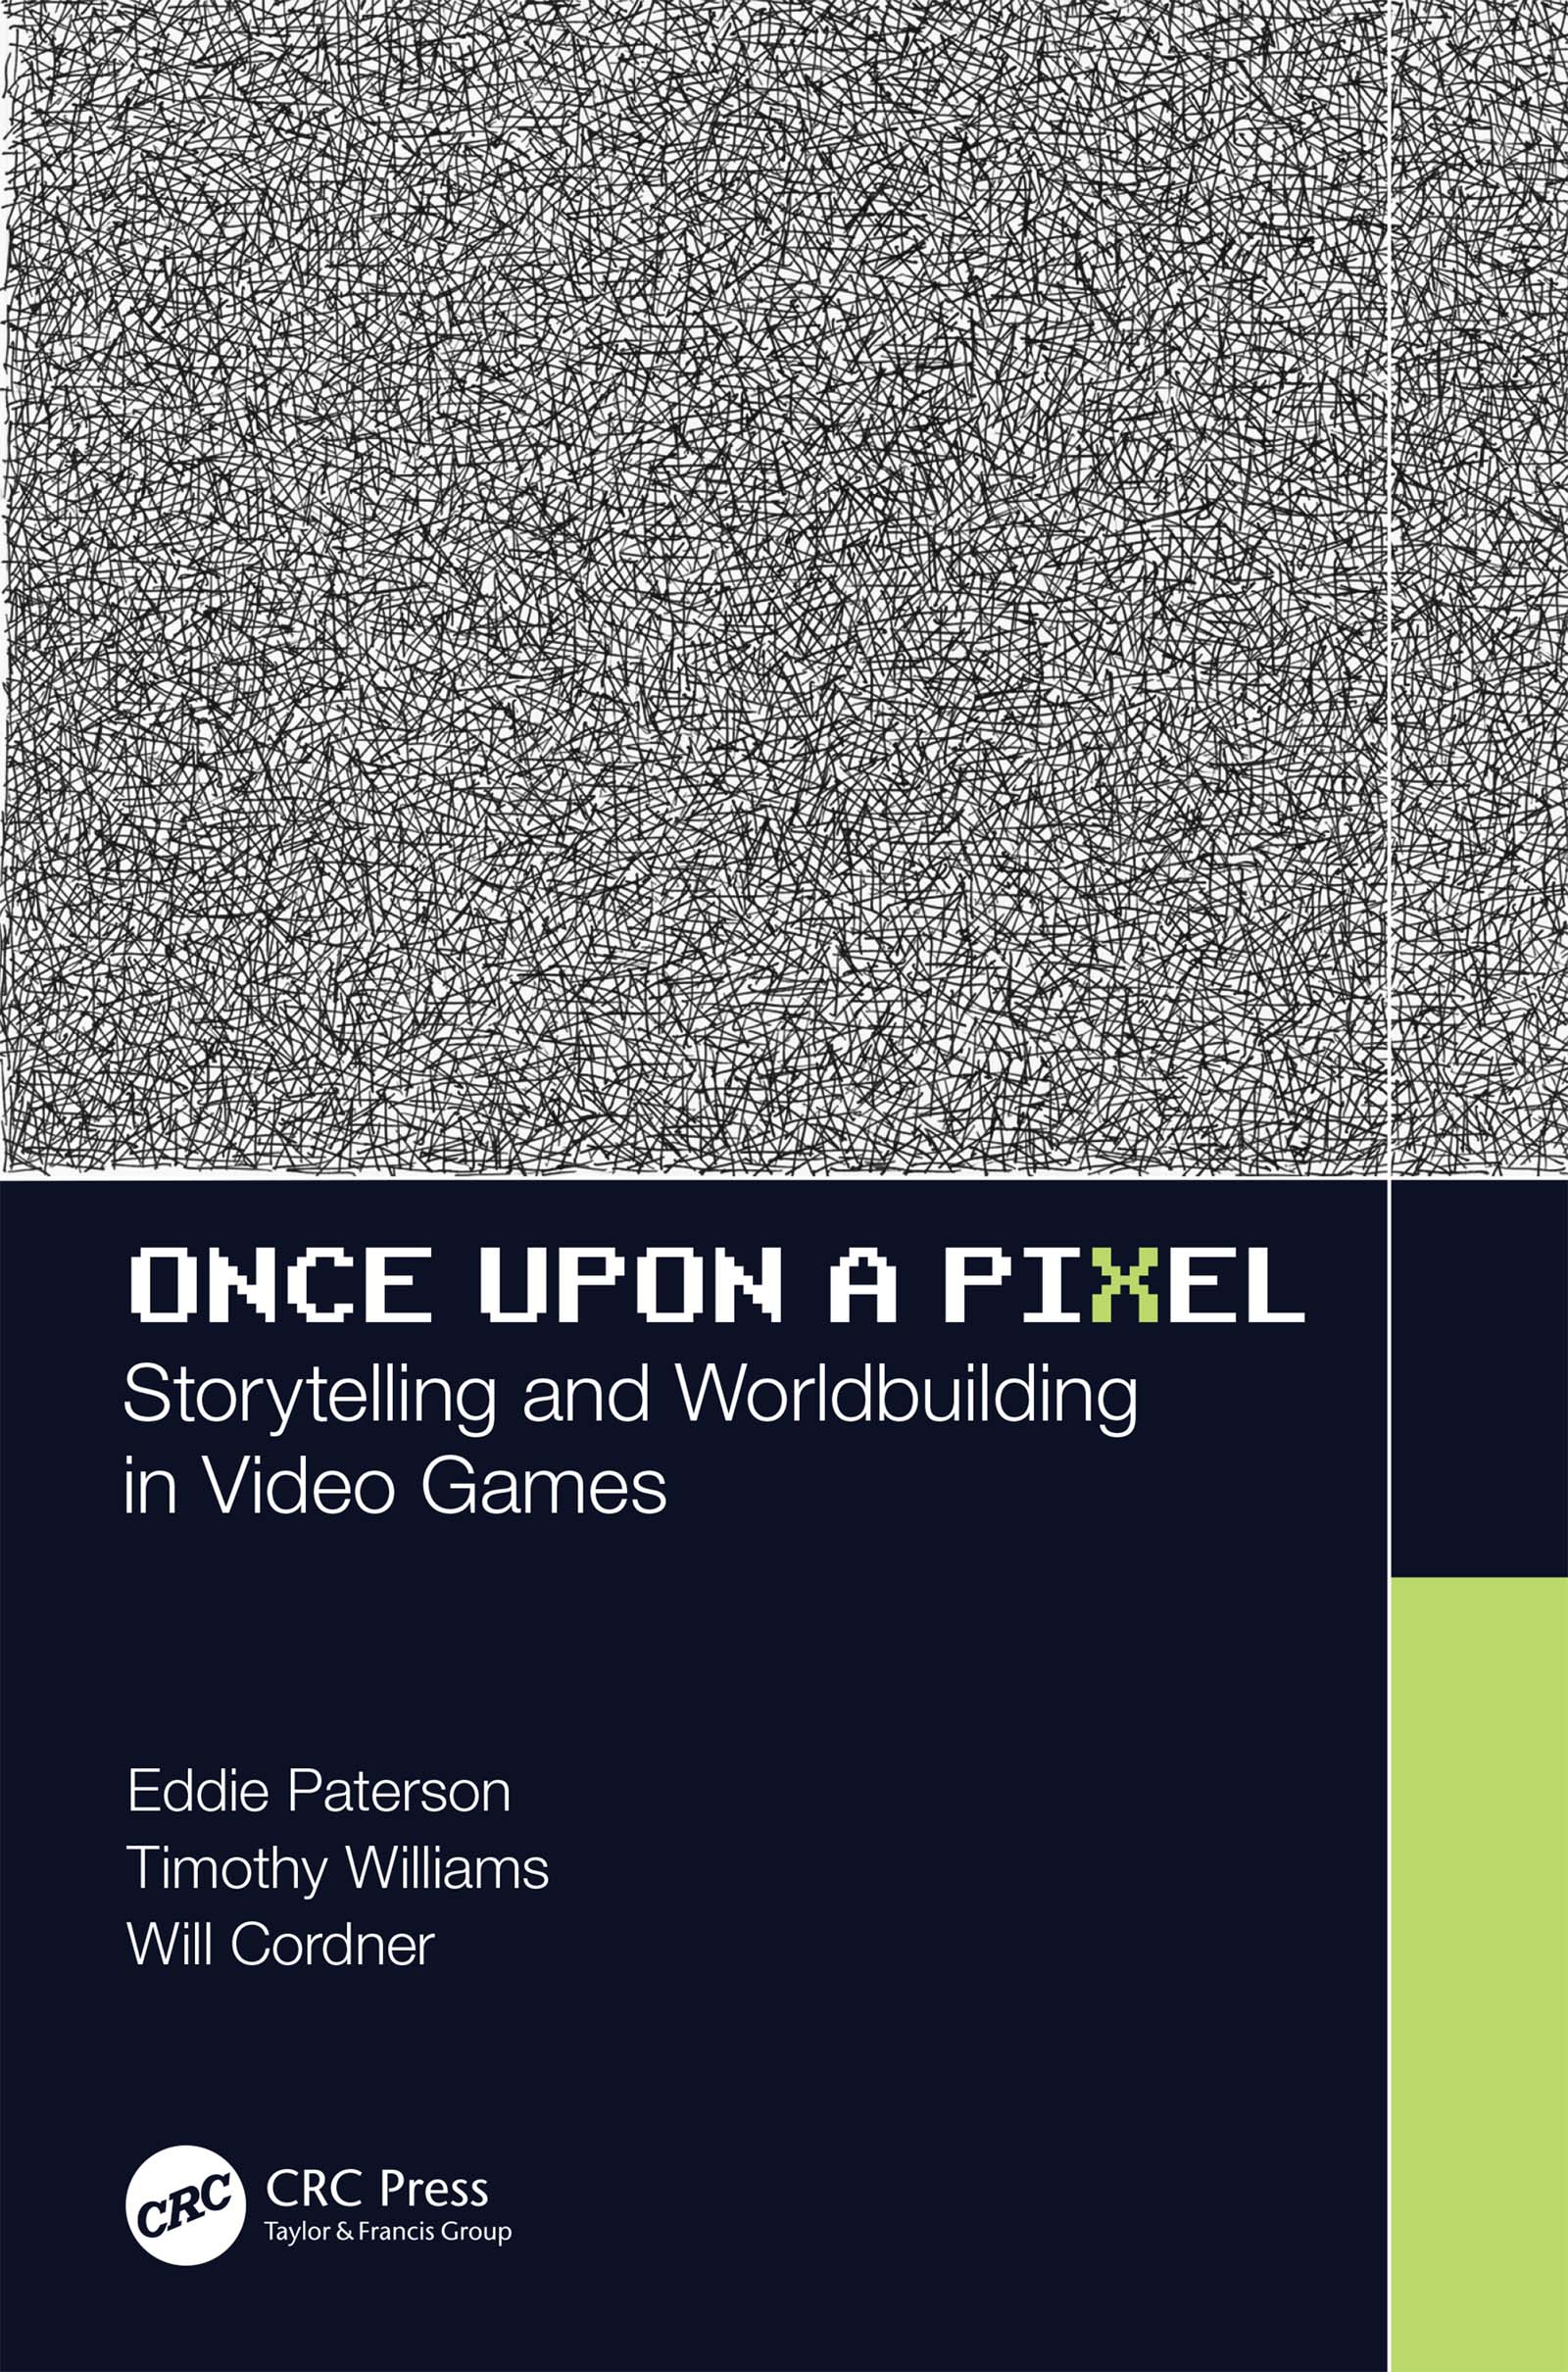 Once Upon a Pixel: Storytelling and Worldbuilding in Video Games book cover